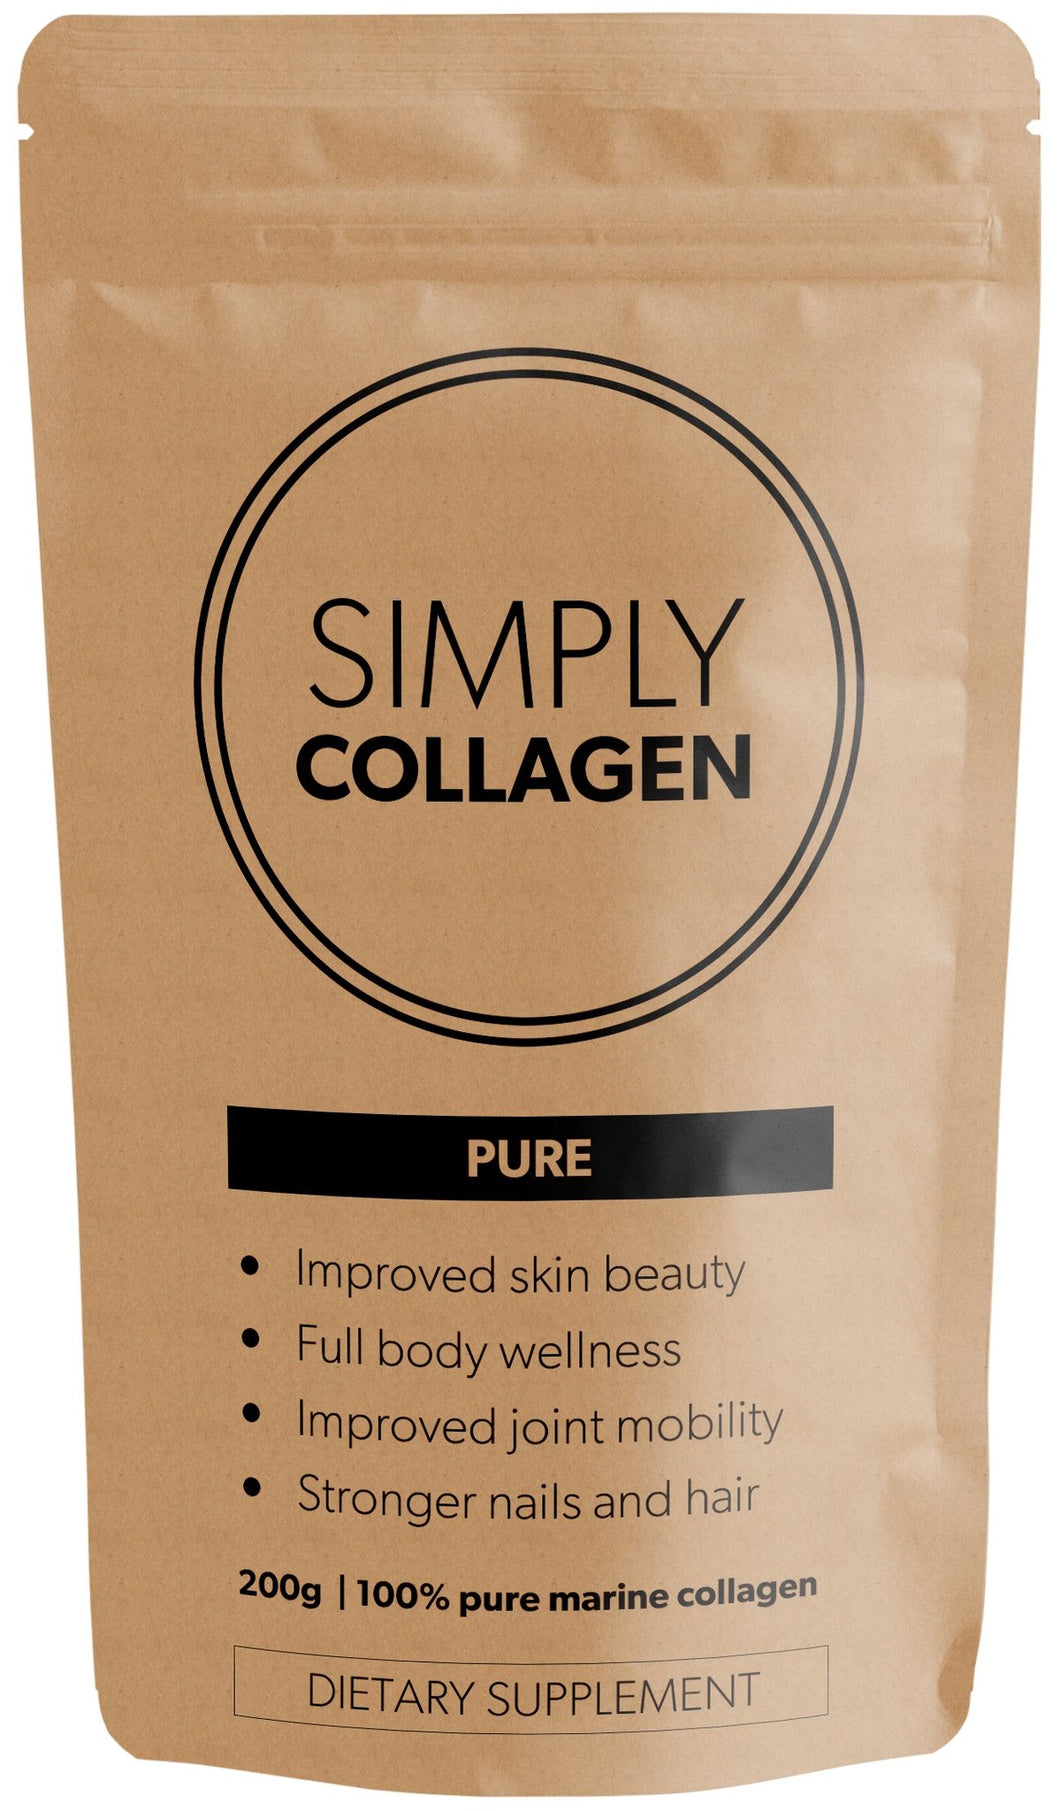 Simply Collagen - PURE